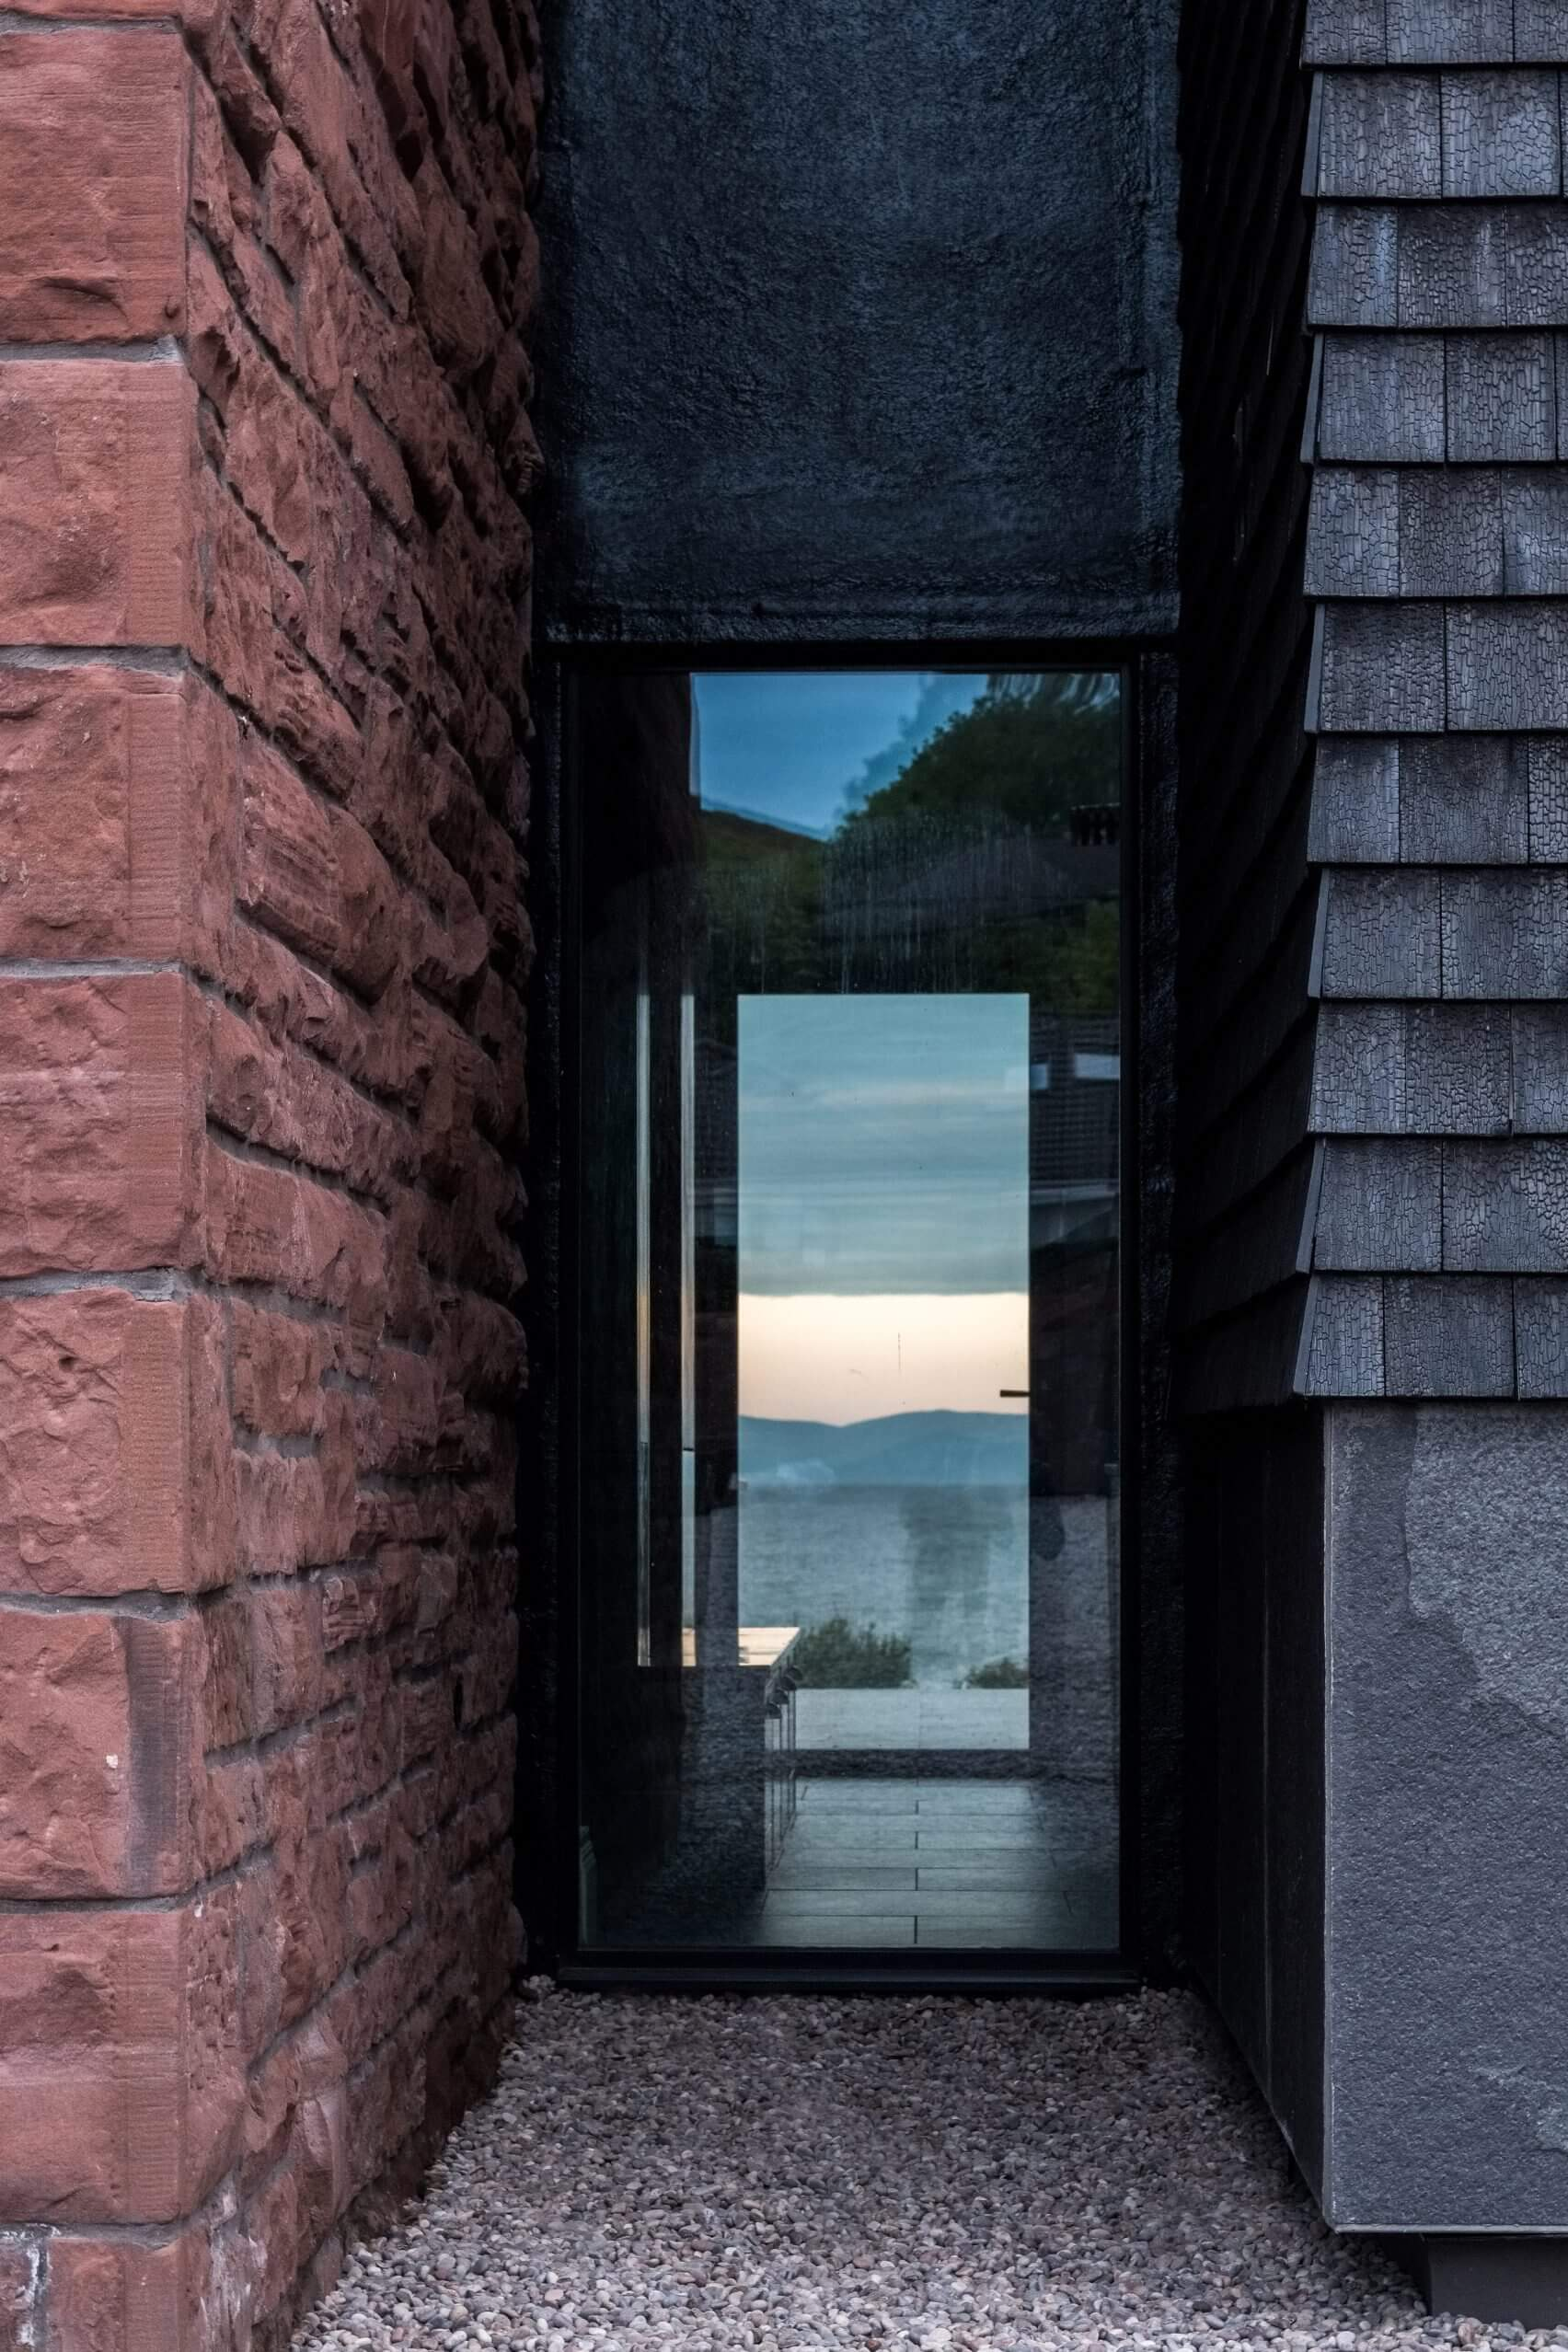 shingle-house-flower-michelin-architects-residential-scottish-houses-extensions-renovations_dezeen_2364_col_12-1704x2556